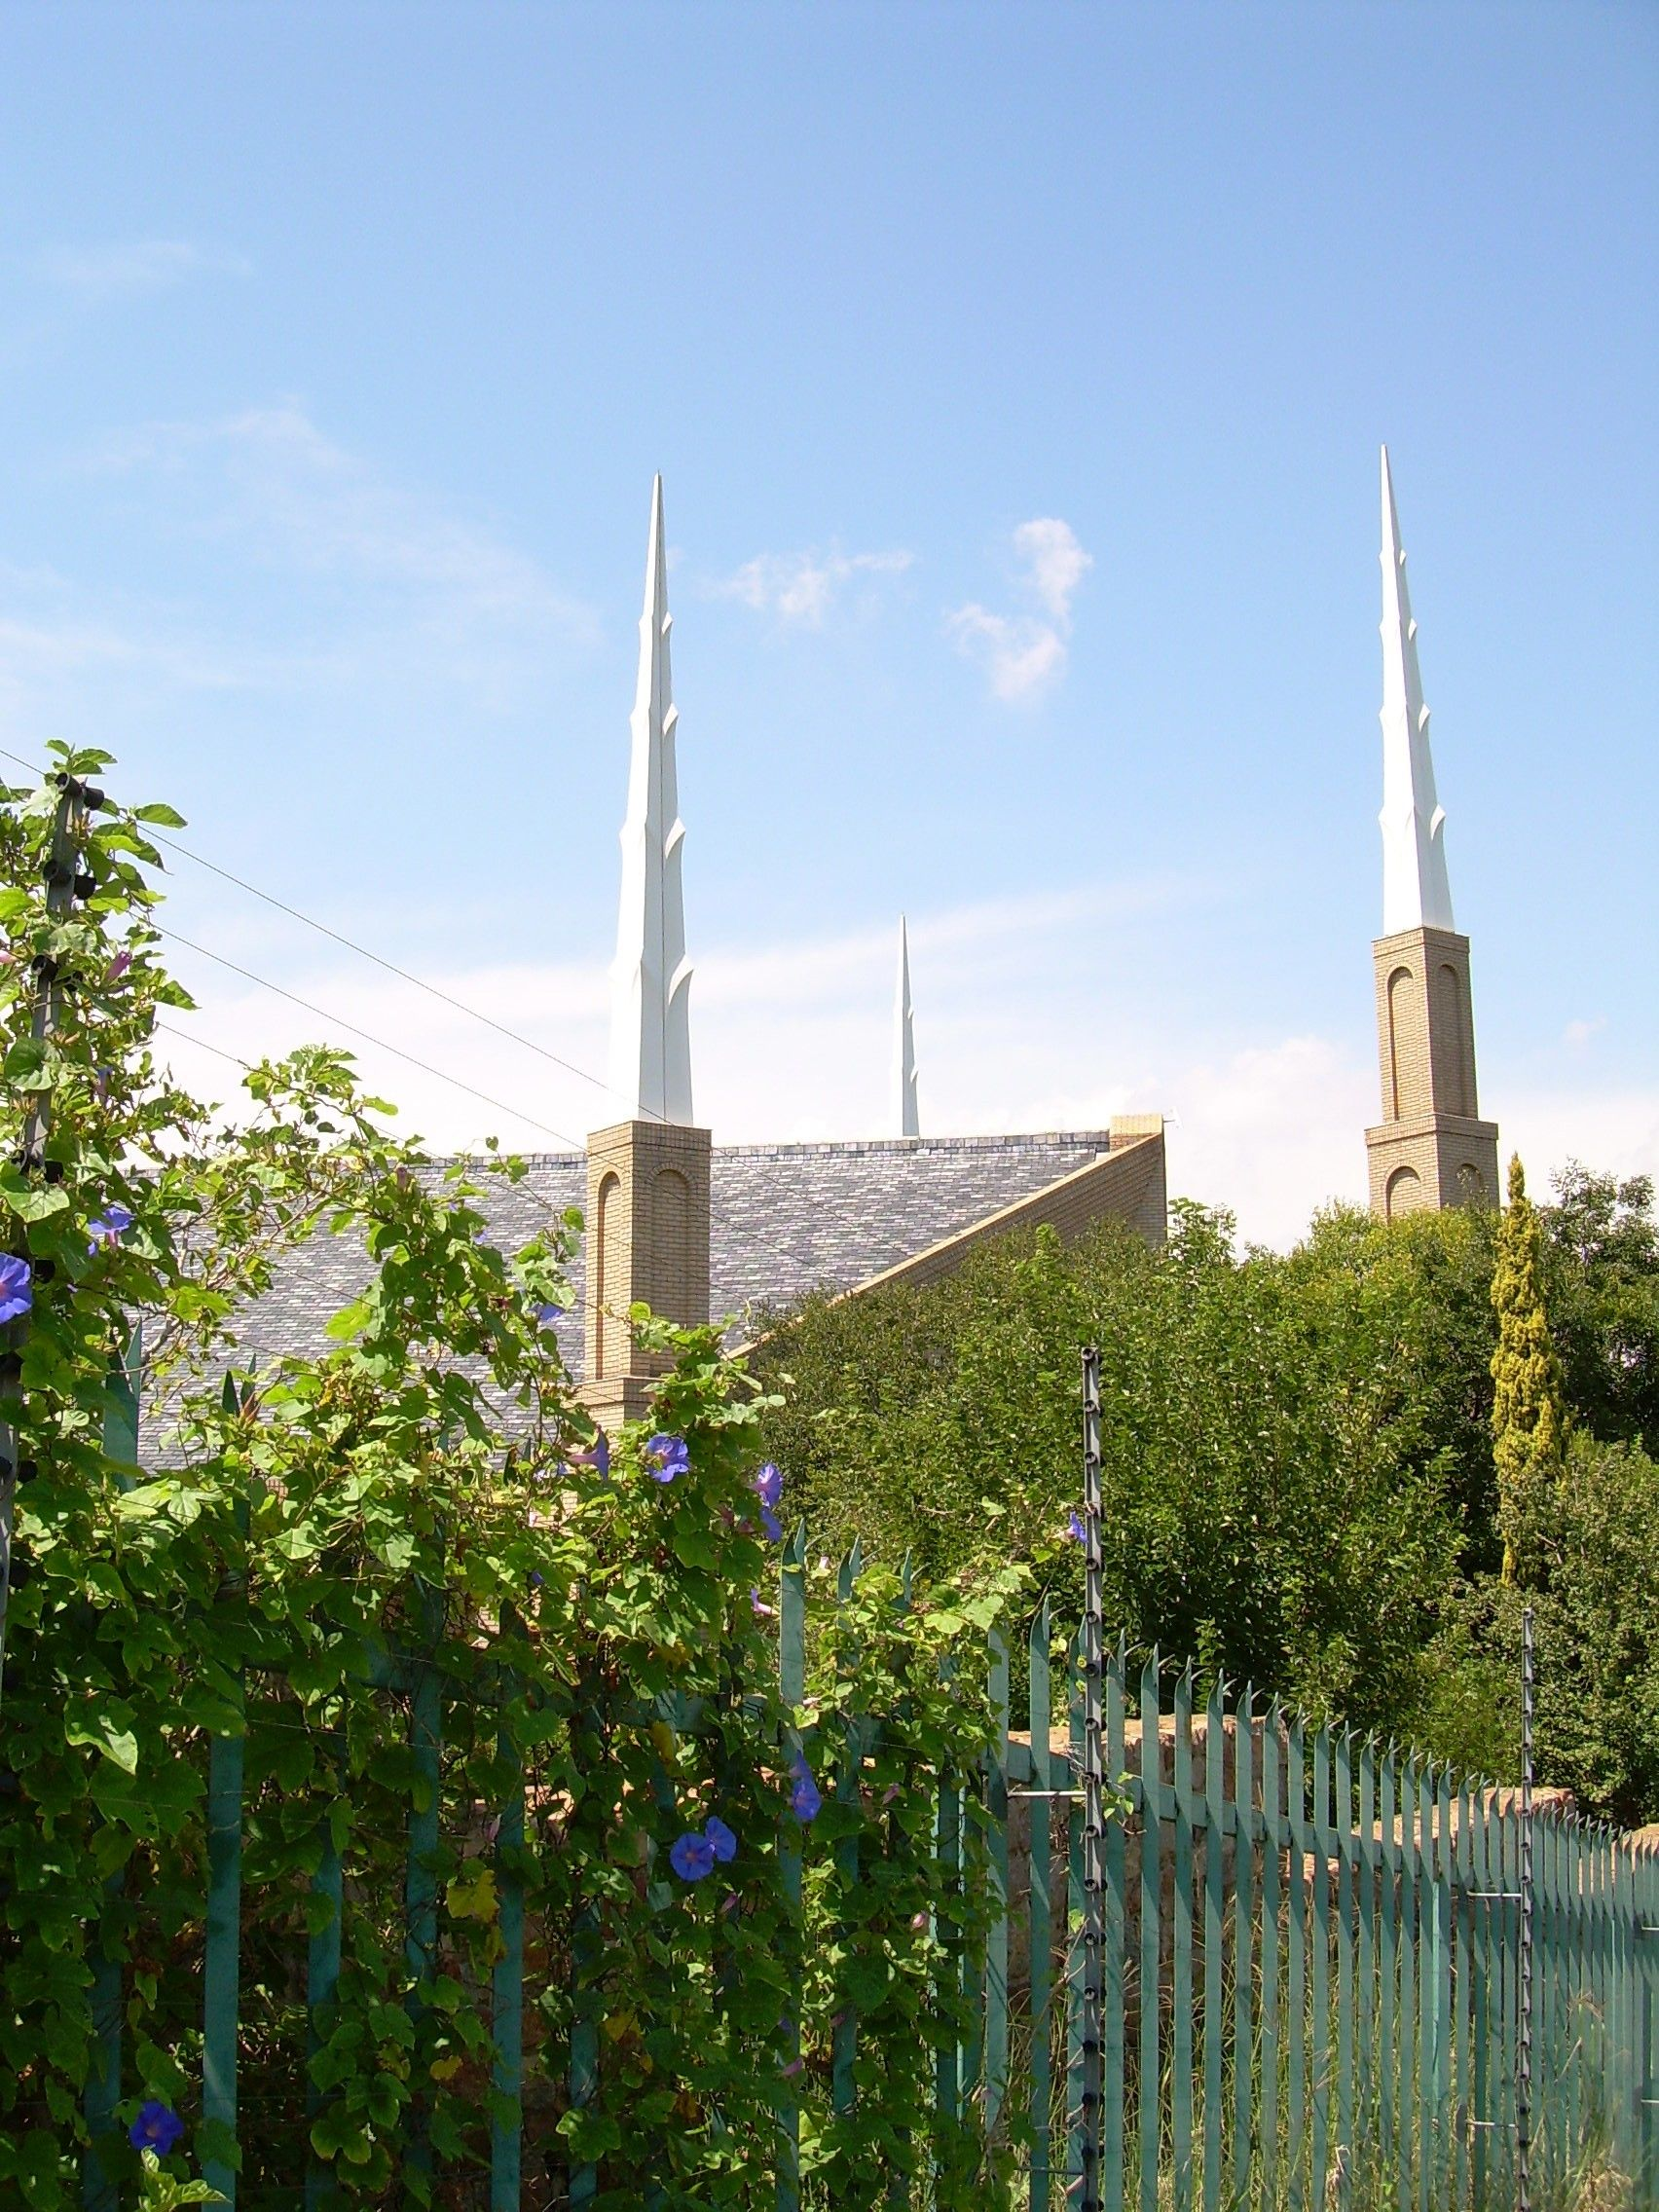 The Johannesburg South Africa Temple spires, including scenery and the exterior of the temple.